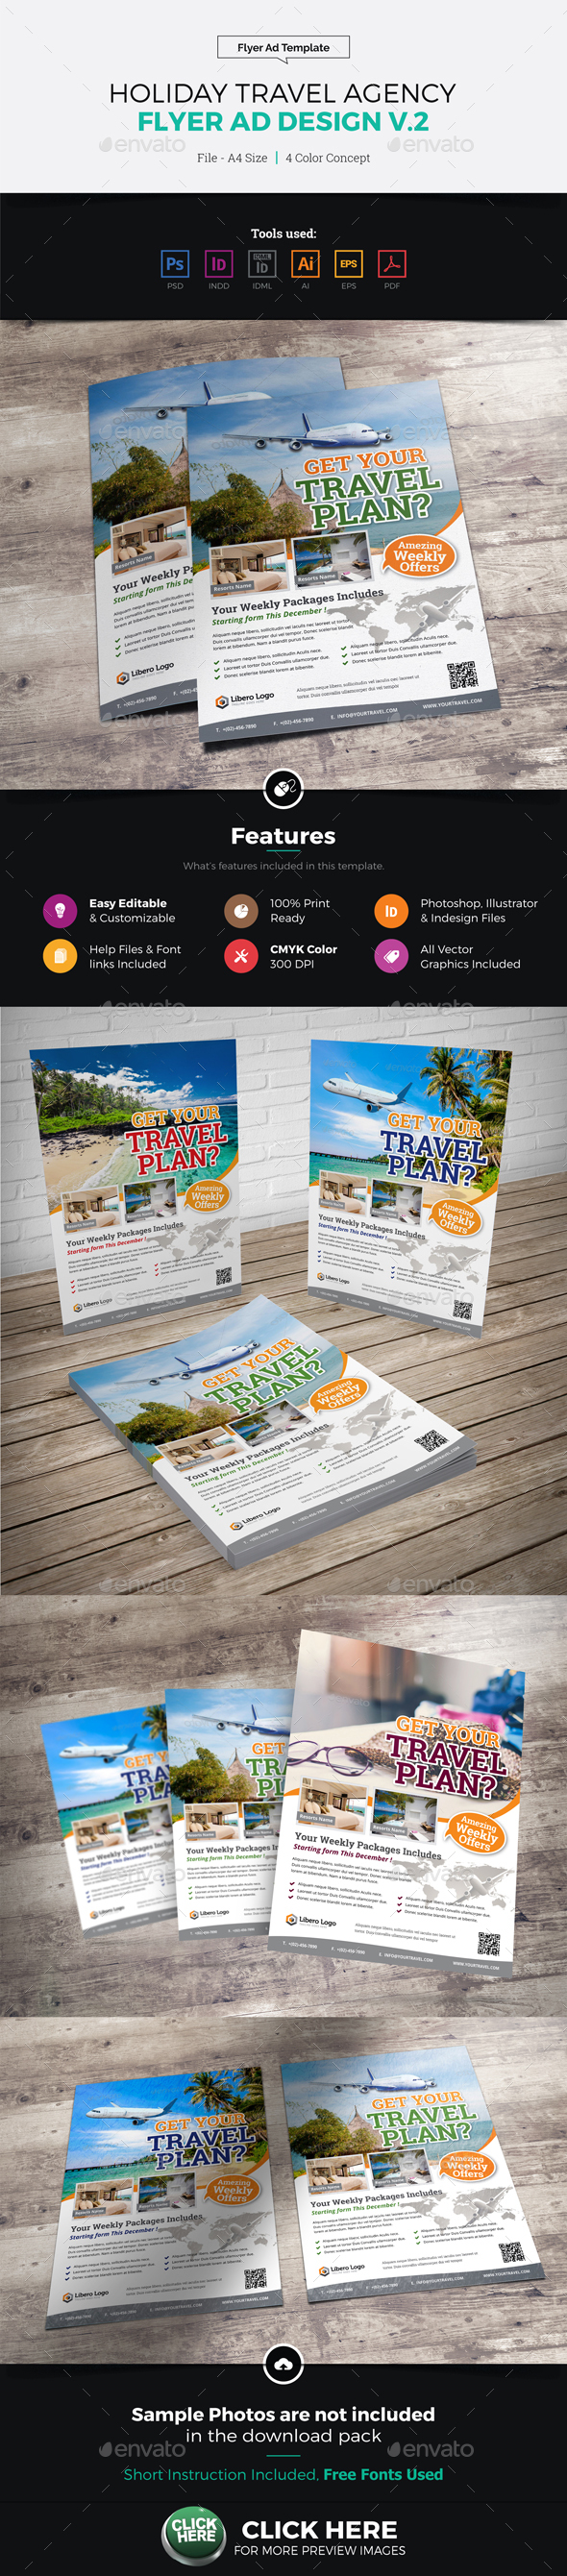 Travel Agency Flyer Ad Design v2 - Corporate Flyers